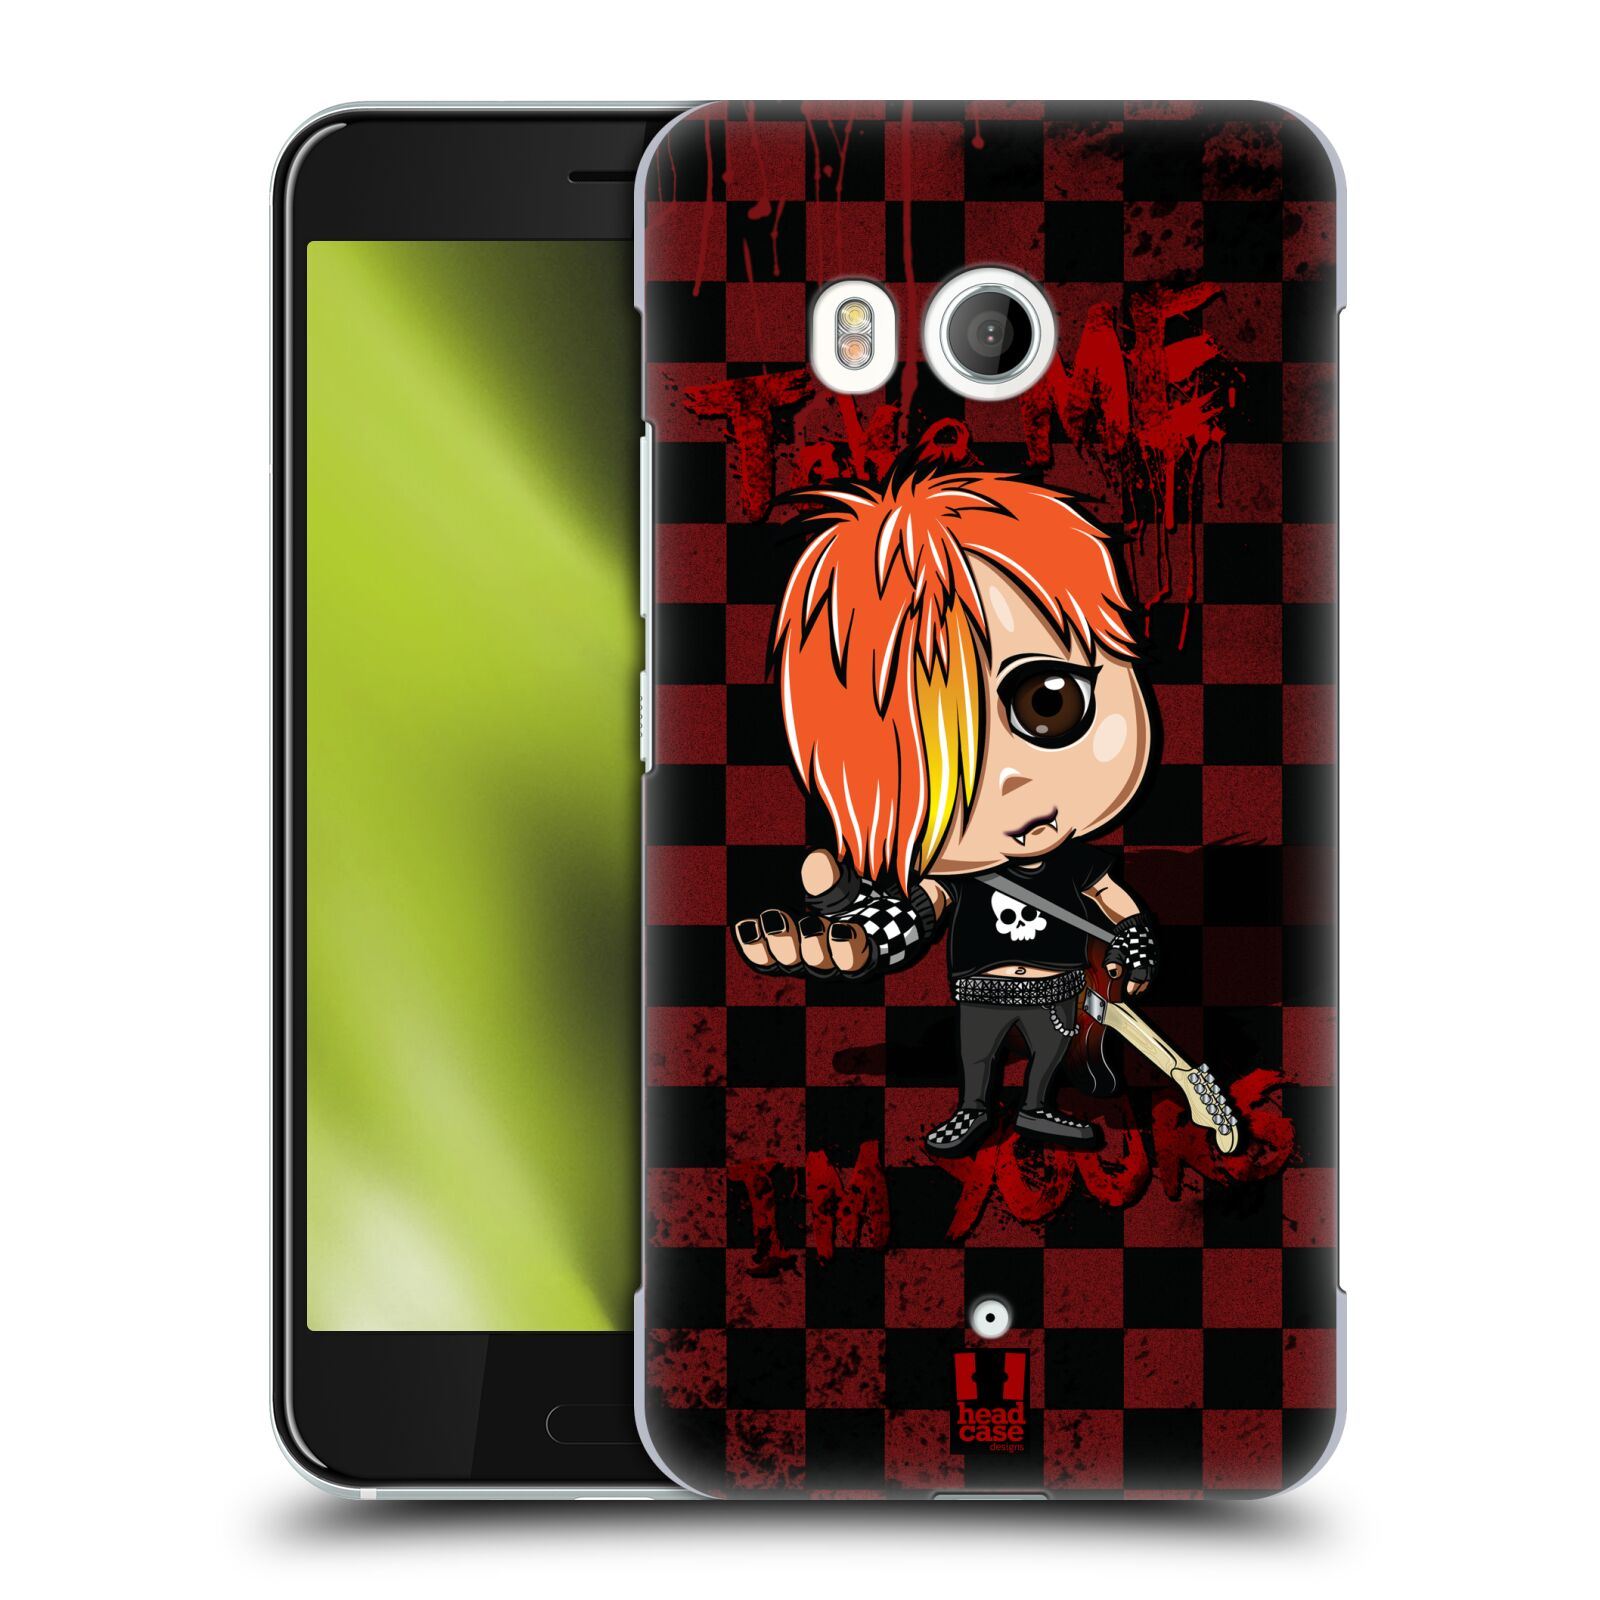 HEAD-CASE-DESIGNS-ENFANTS-DU-ROCK-ETUI-COQUE-D-039-ARRIERE-POUR-HTC-U11-DUAL